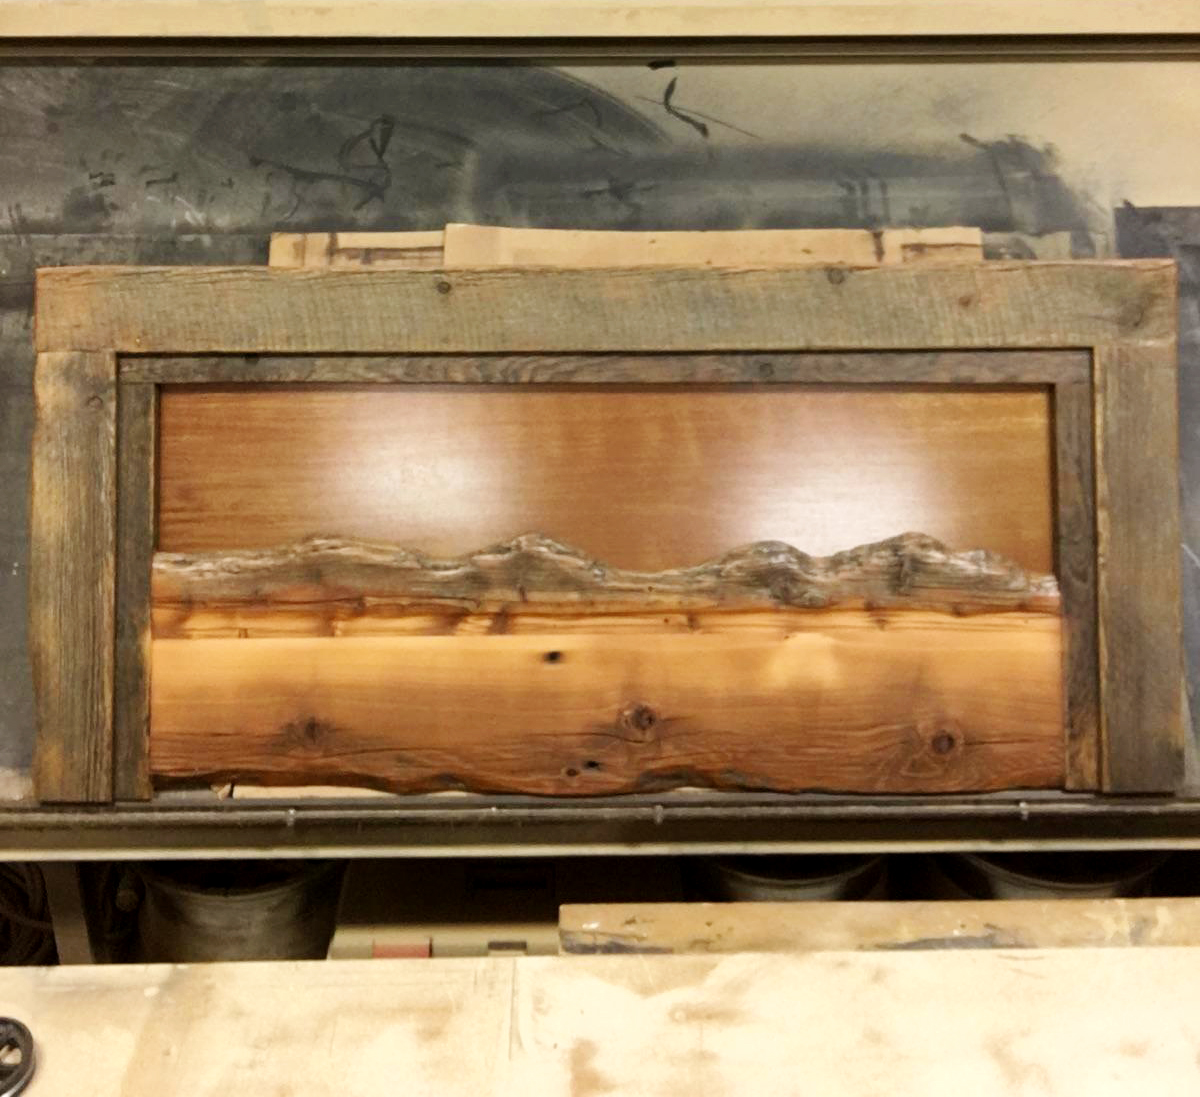 Headboard w/ Mountain Range Inset